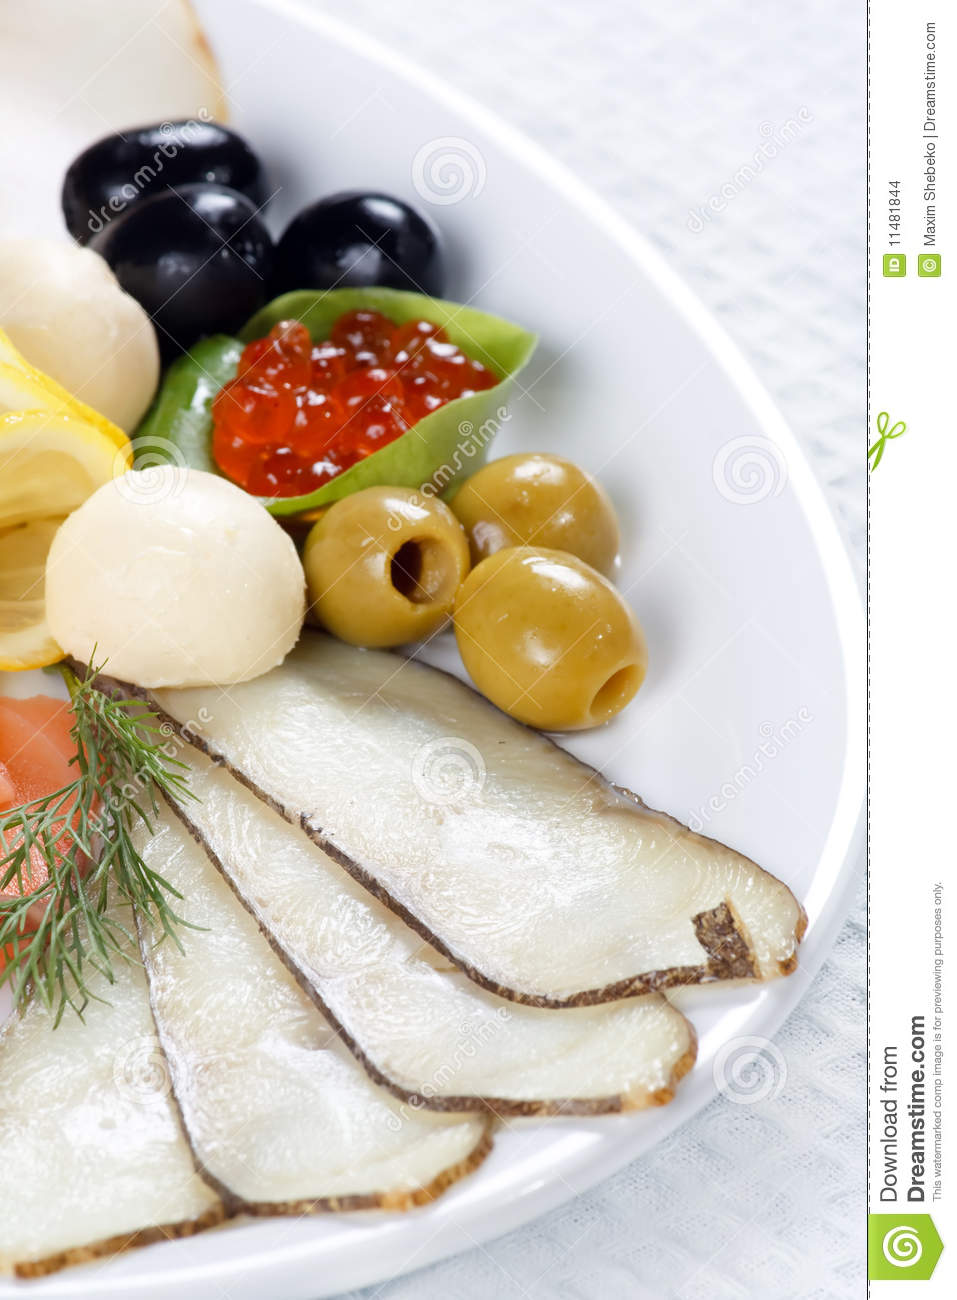 Fish with vegetables stock images image 11481844 for Fish with vegetables